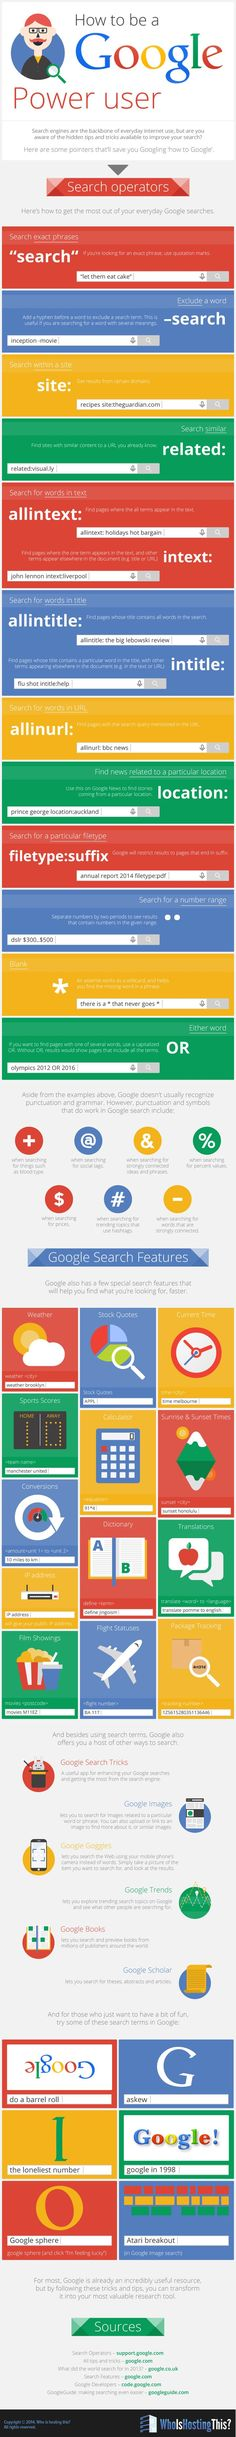 How To Be A Google Power User - Infographic